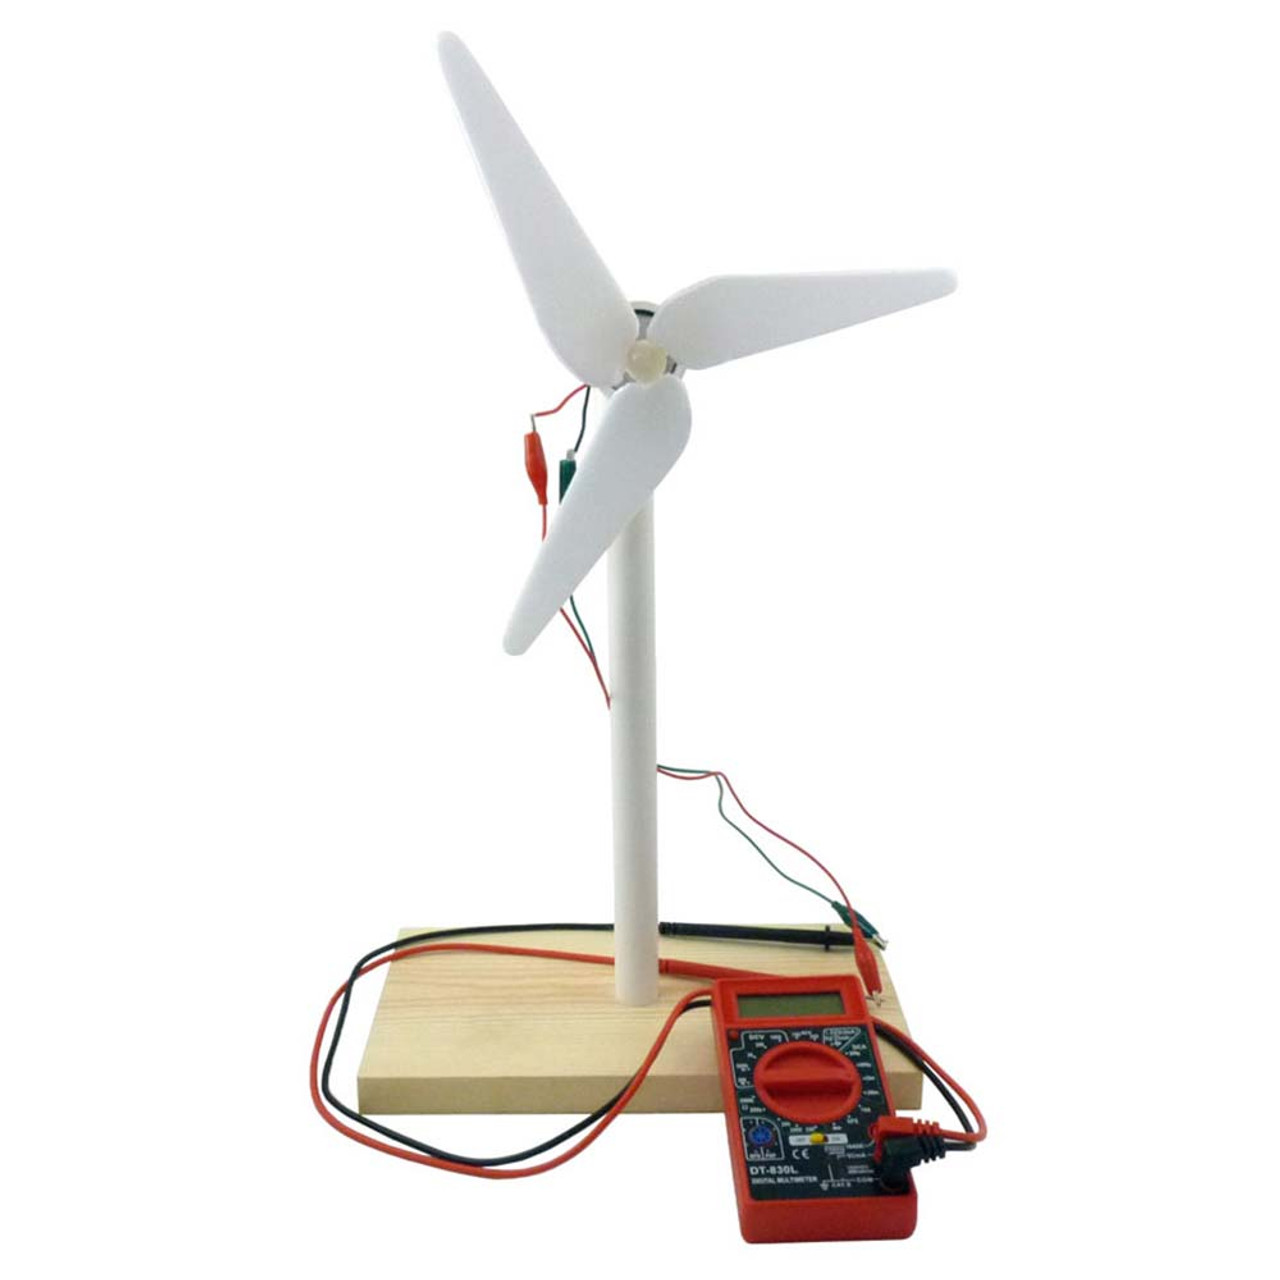 Home Science Experiments Energy Electricity Easy Wind Turbine Kit For Students Tools